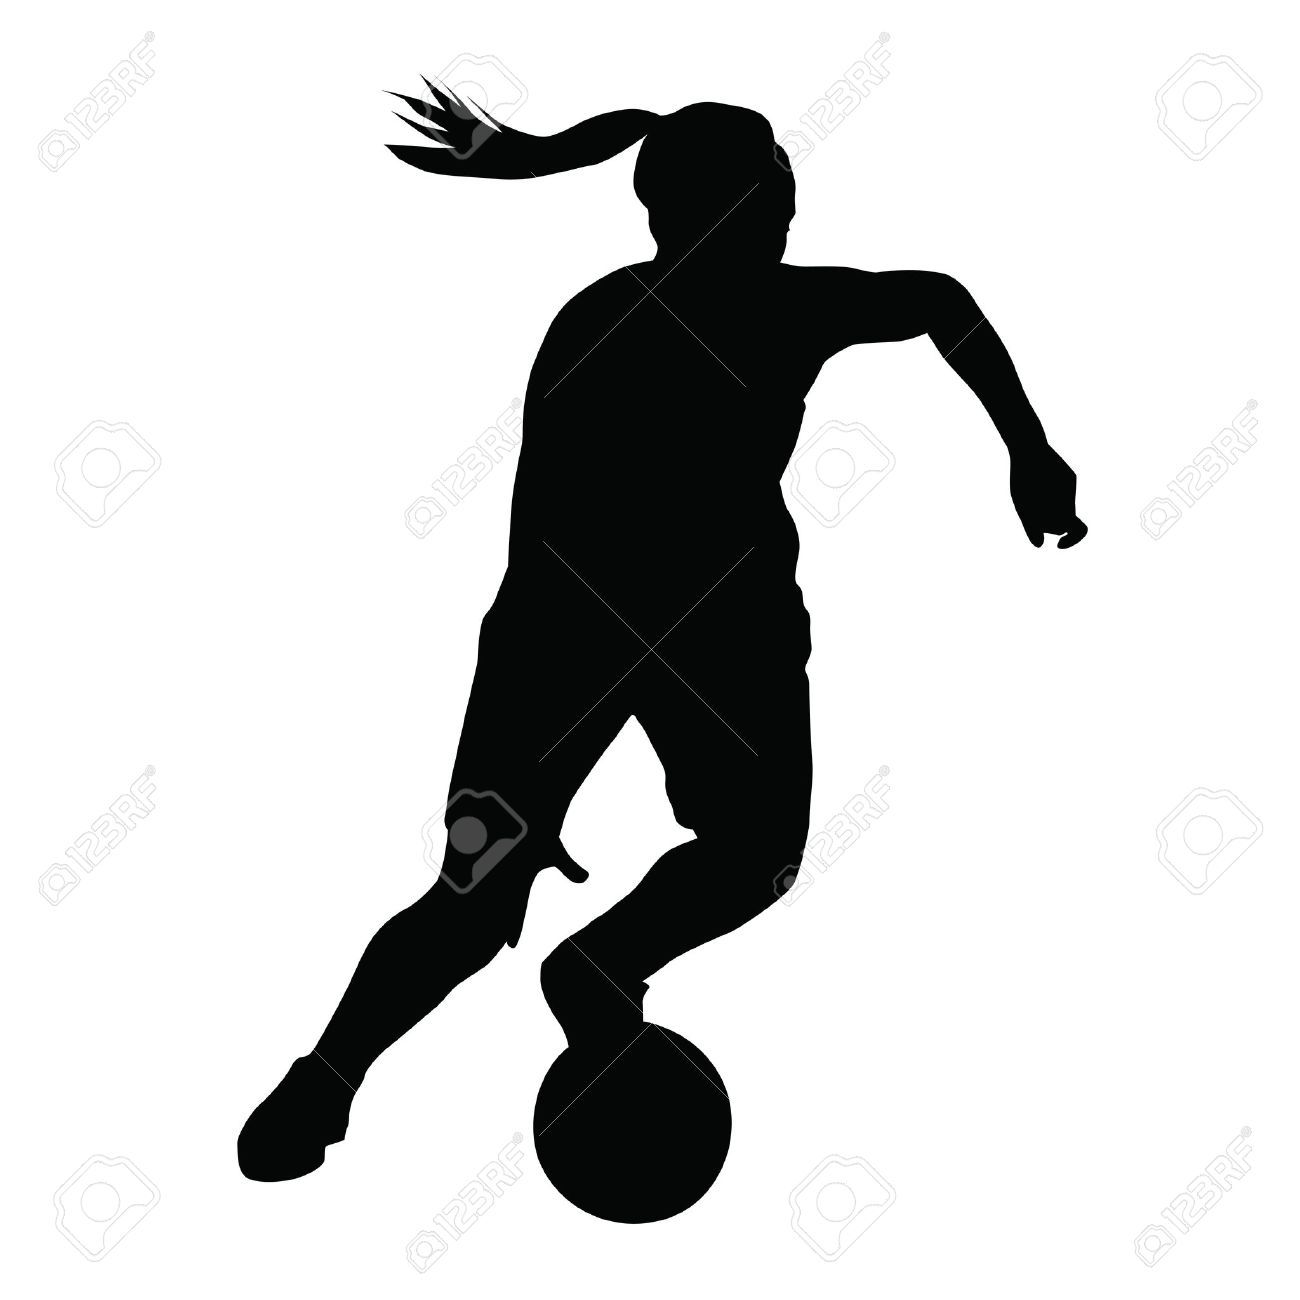 Basketball Player Vector Silhouette Woman Girl Running With Ball Affiliate Vector Silhouette Basketball Girl Running Woman Silhouette Silhouette